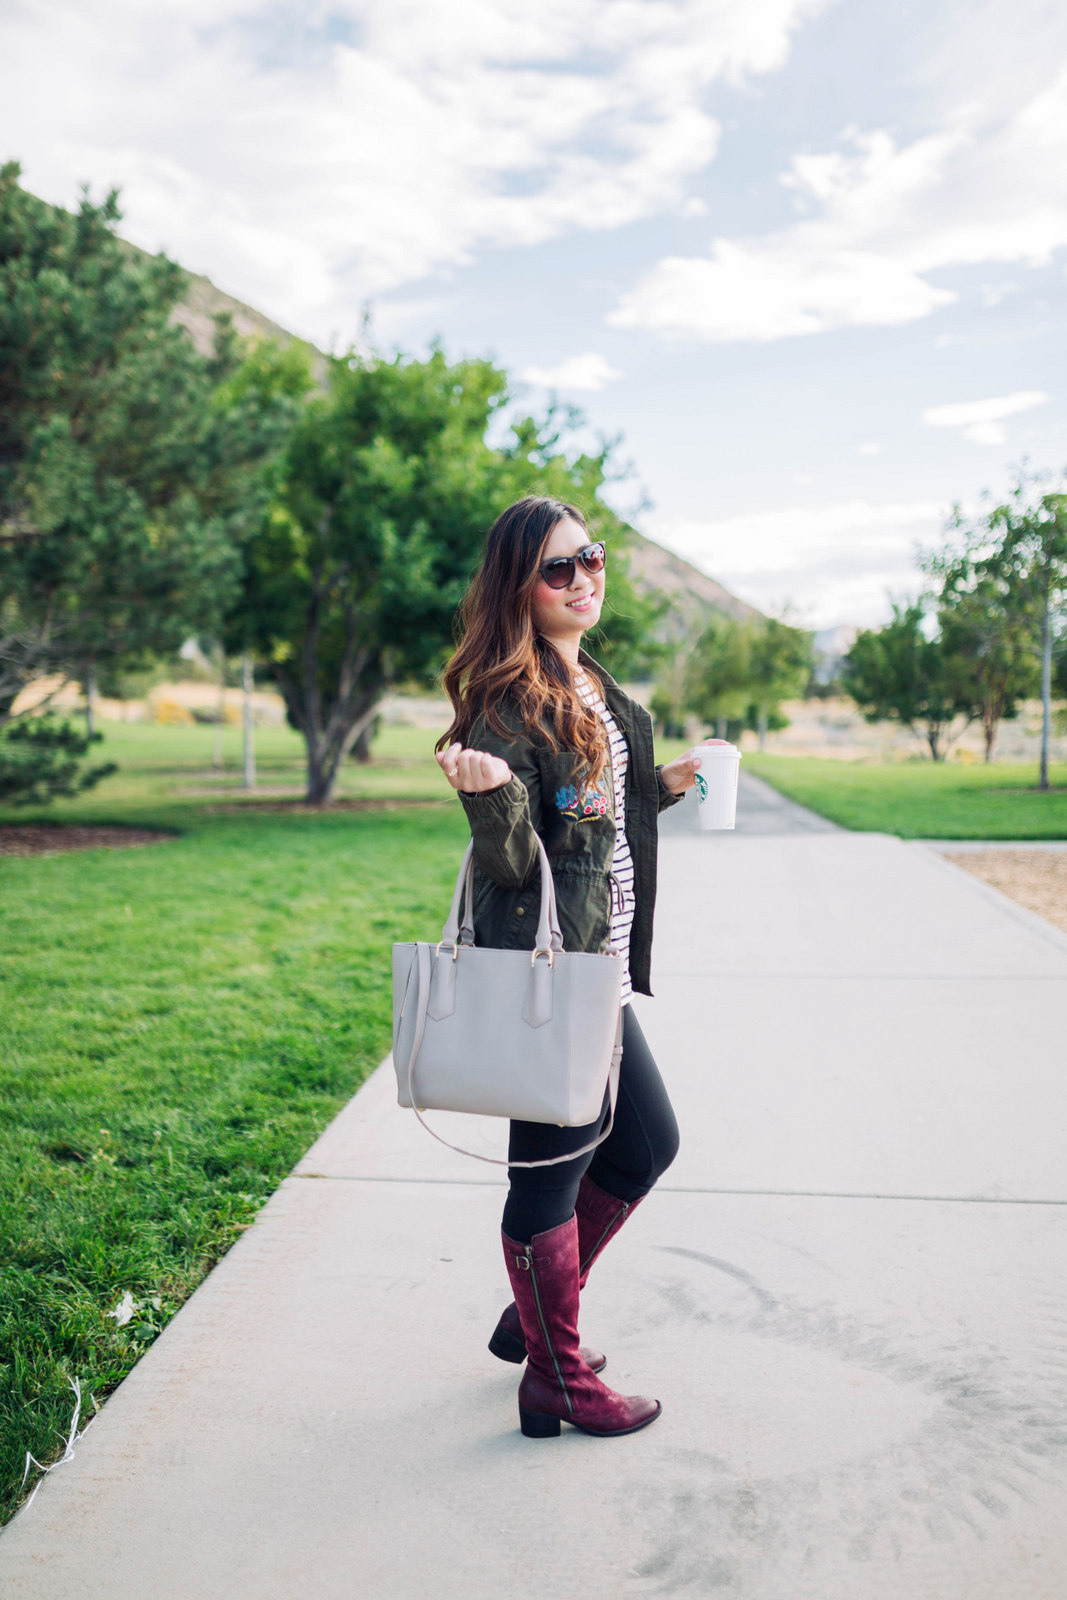 Zappos Shoes - Burgundy Knee High Boots For Fall by Utah fashion blogger Sandy A La Mode